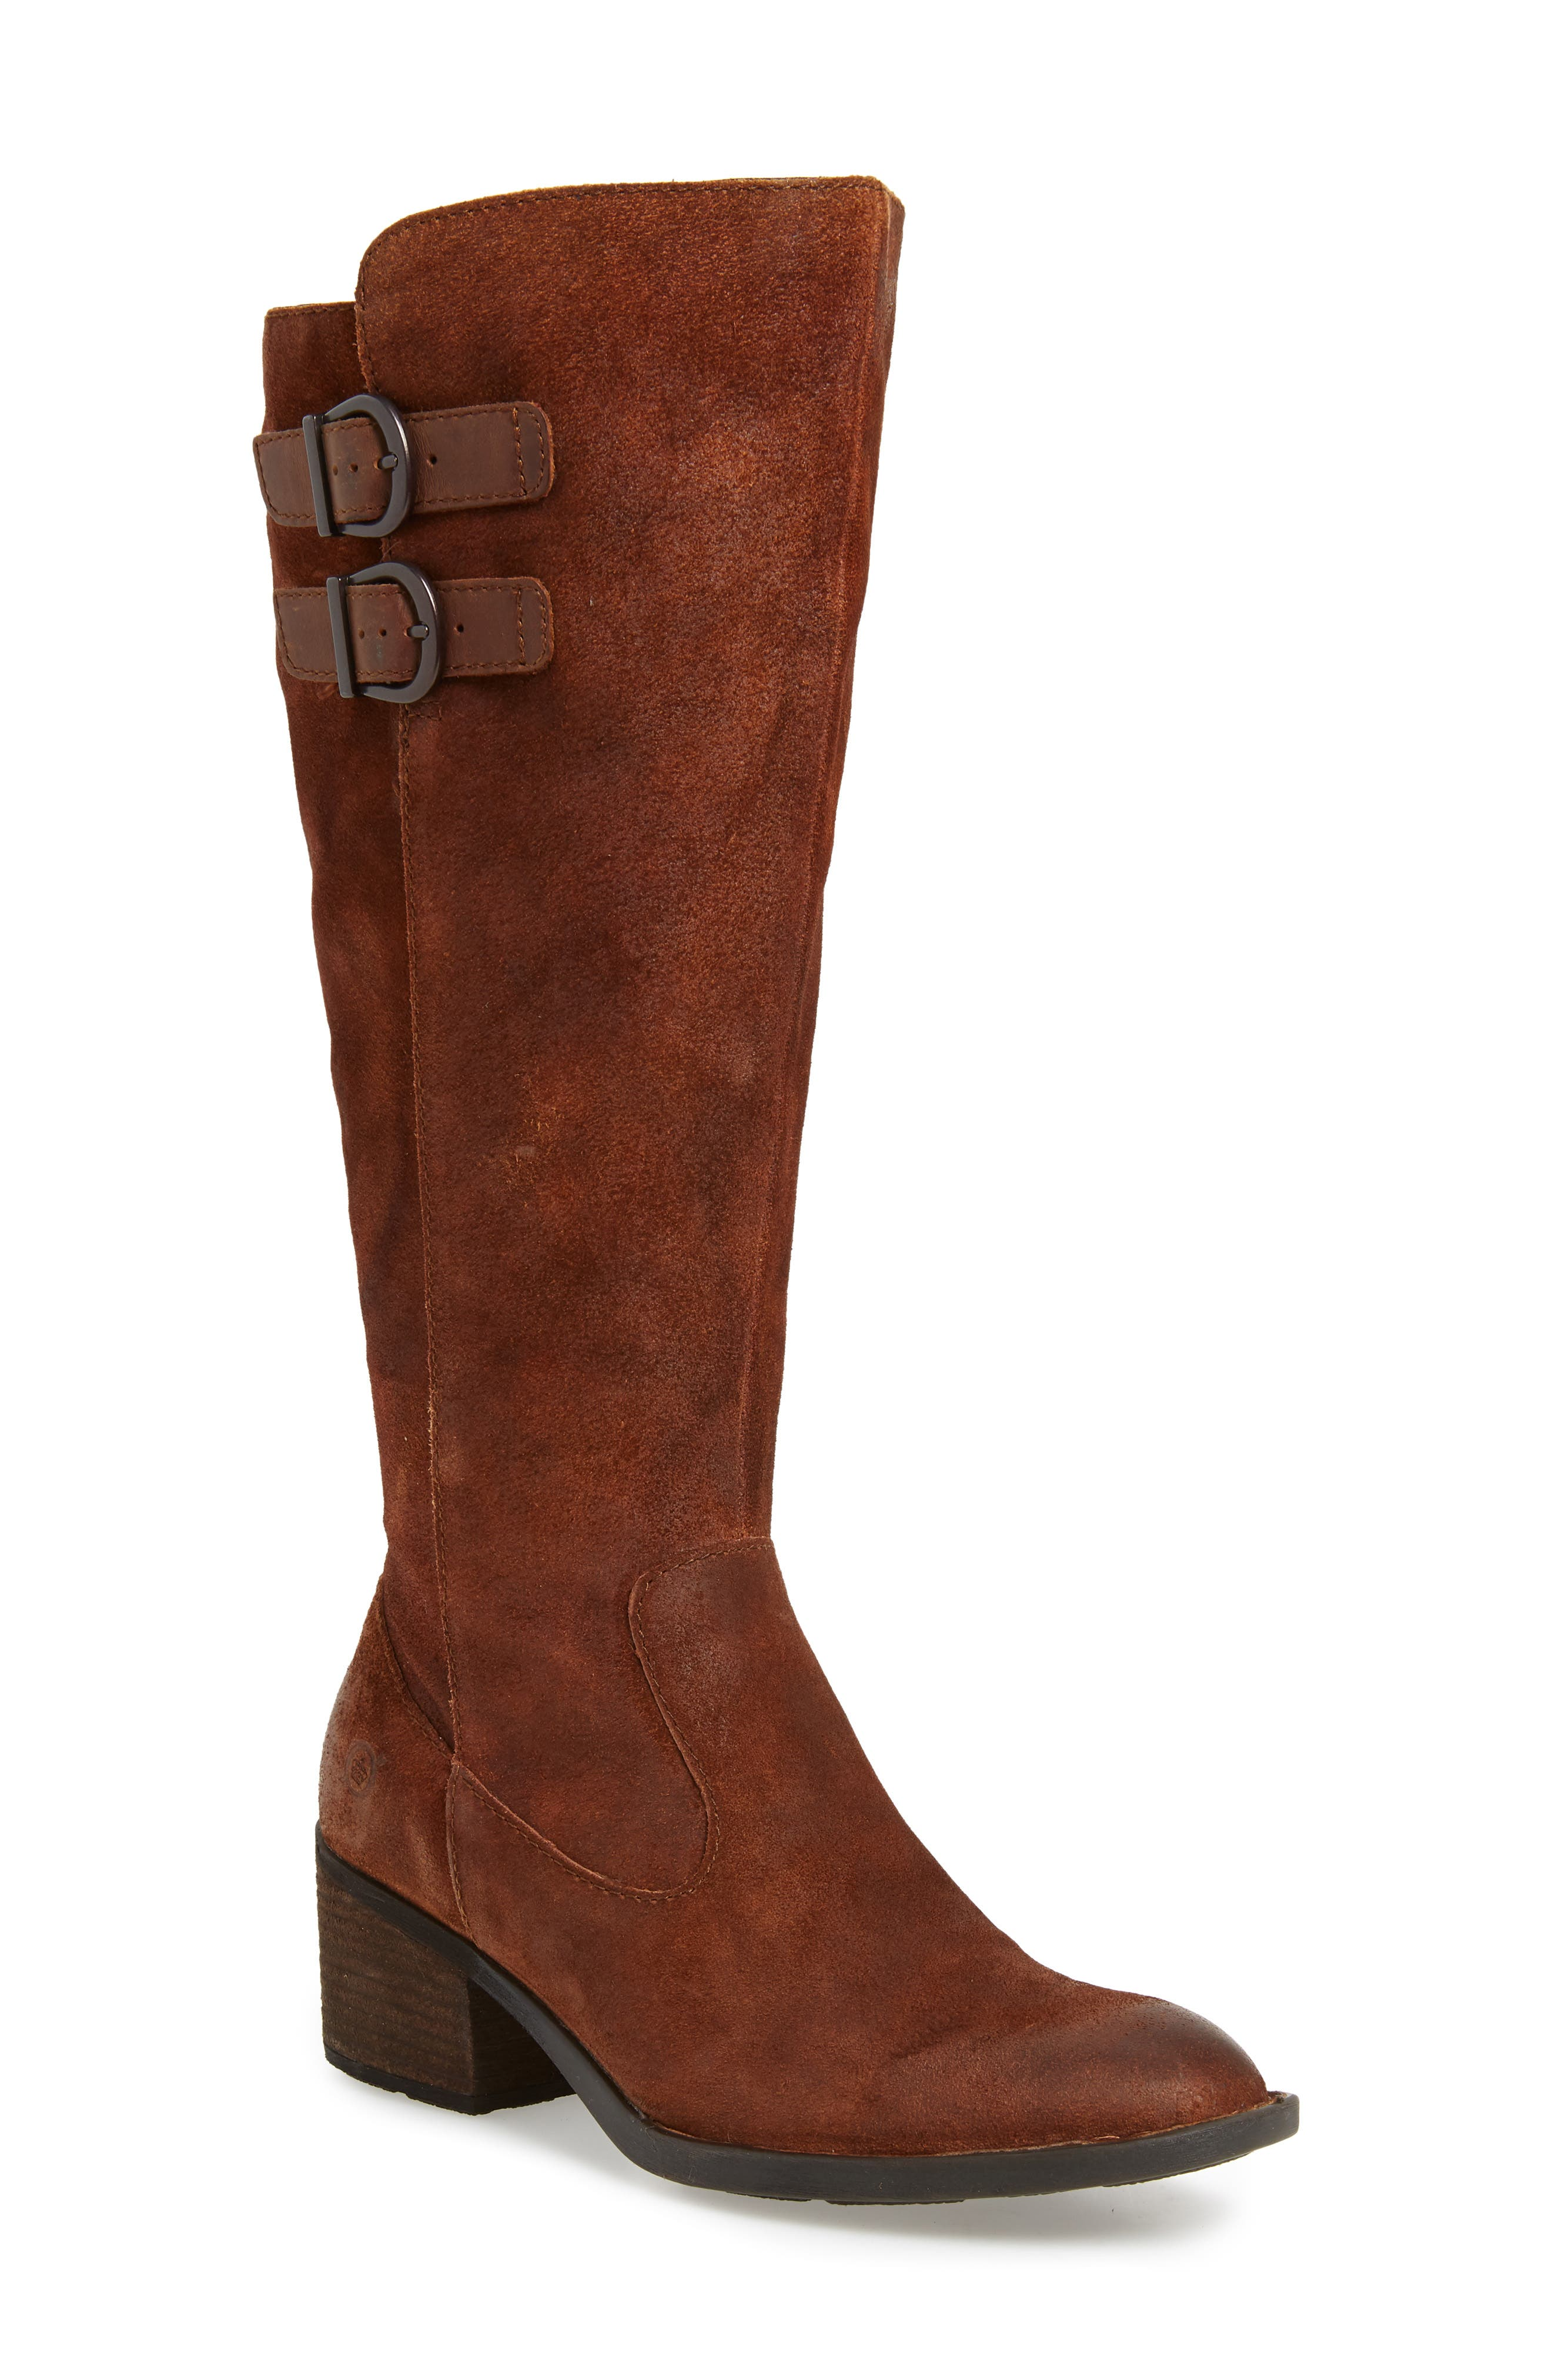 B?rn Basil Knee High Boot, Wide Calf- Brown